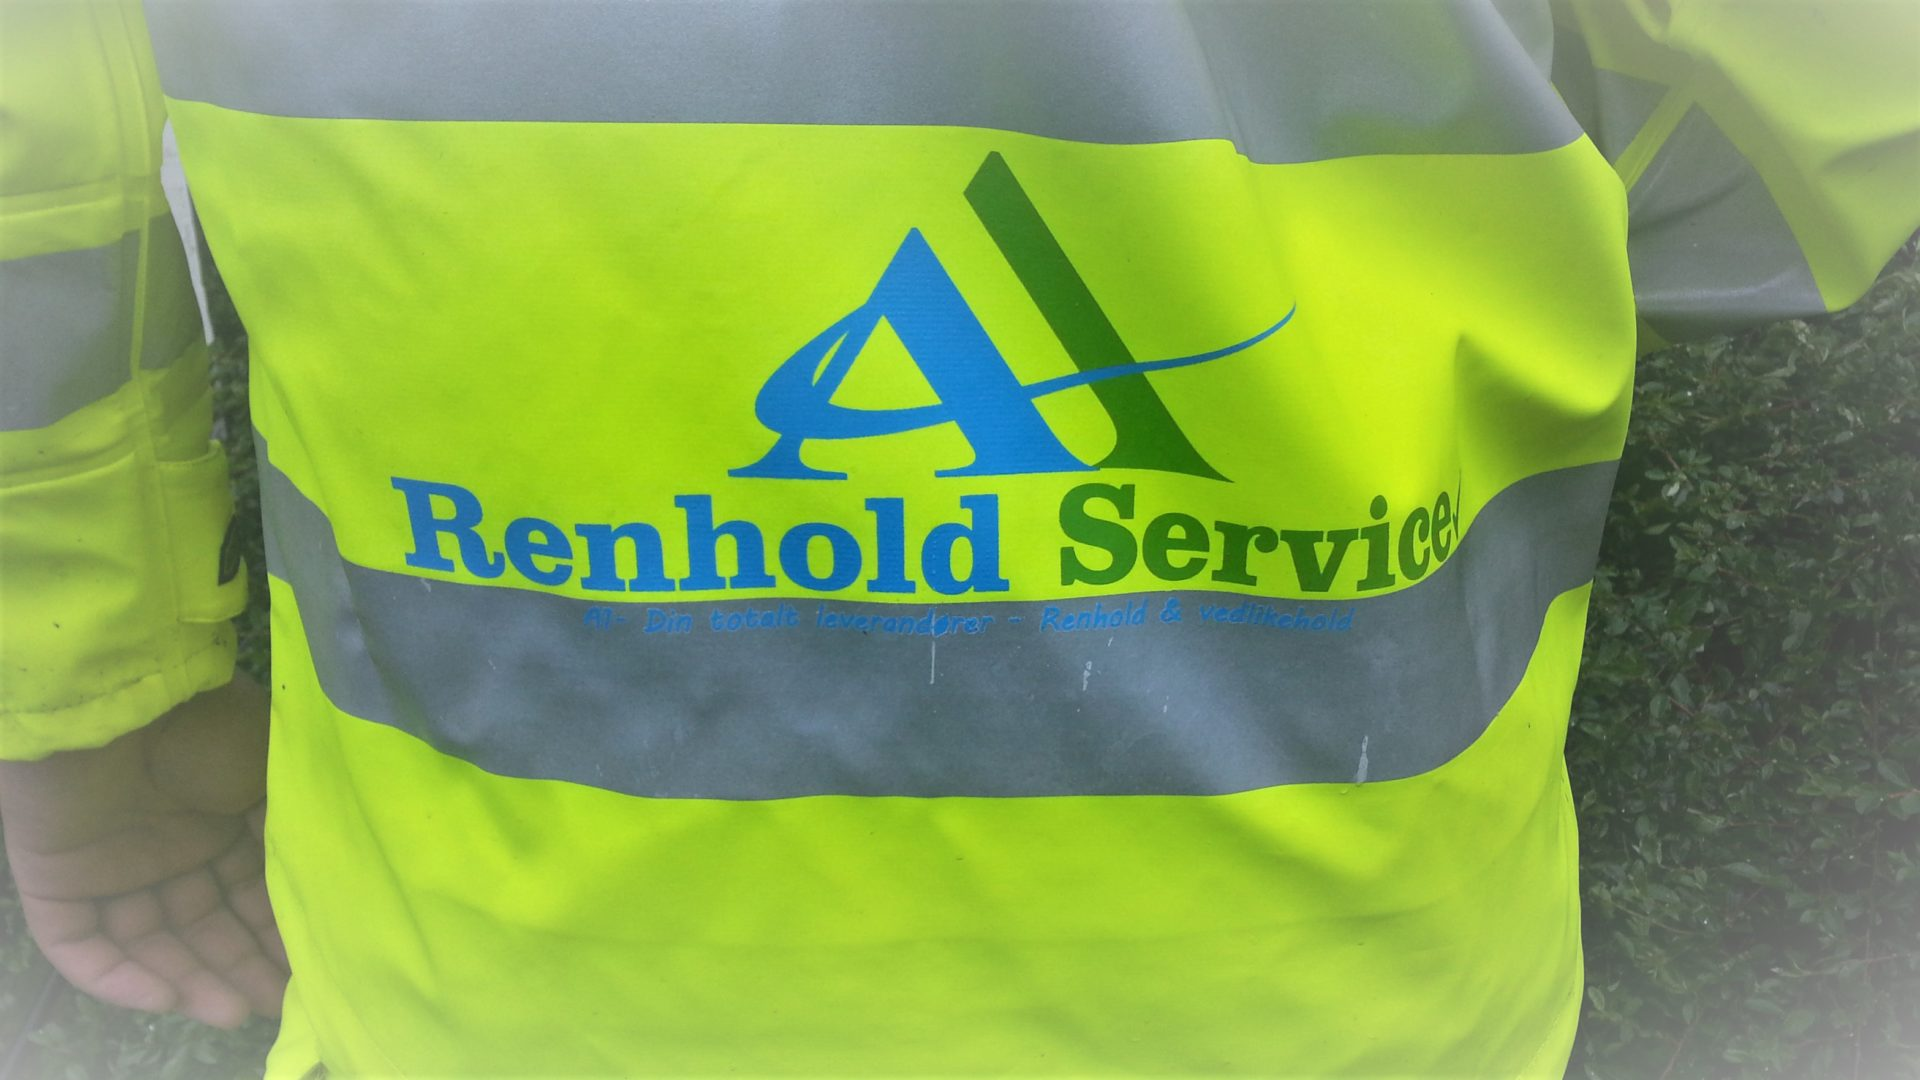 Hagearbeid- A1 Renhold Service AS